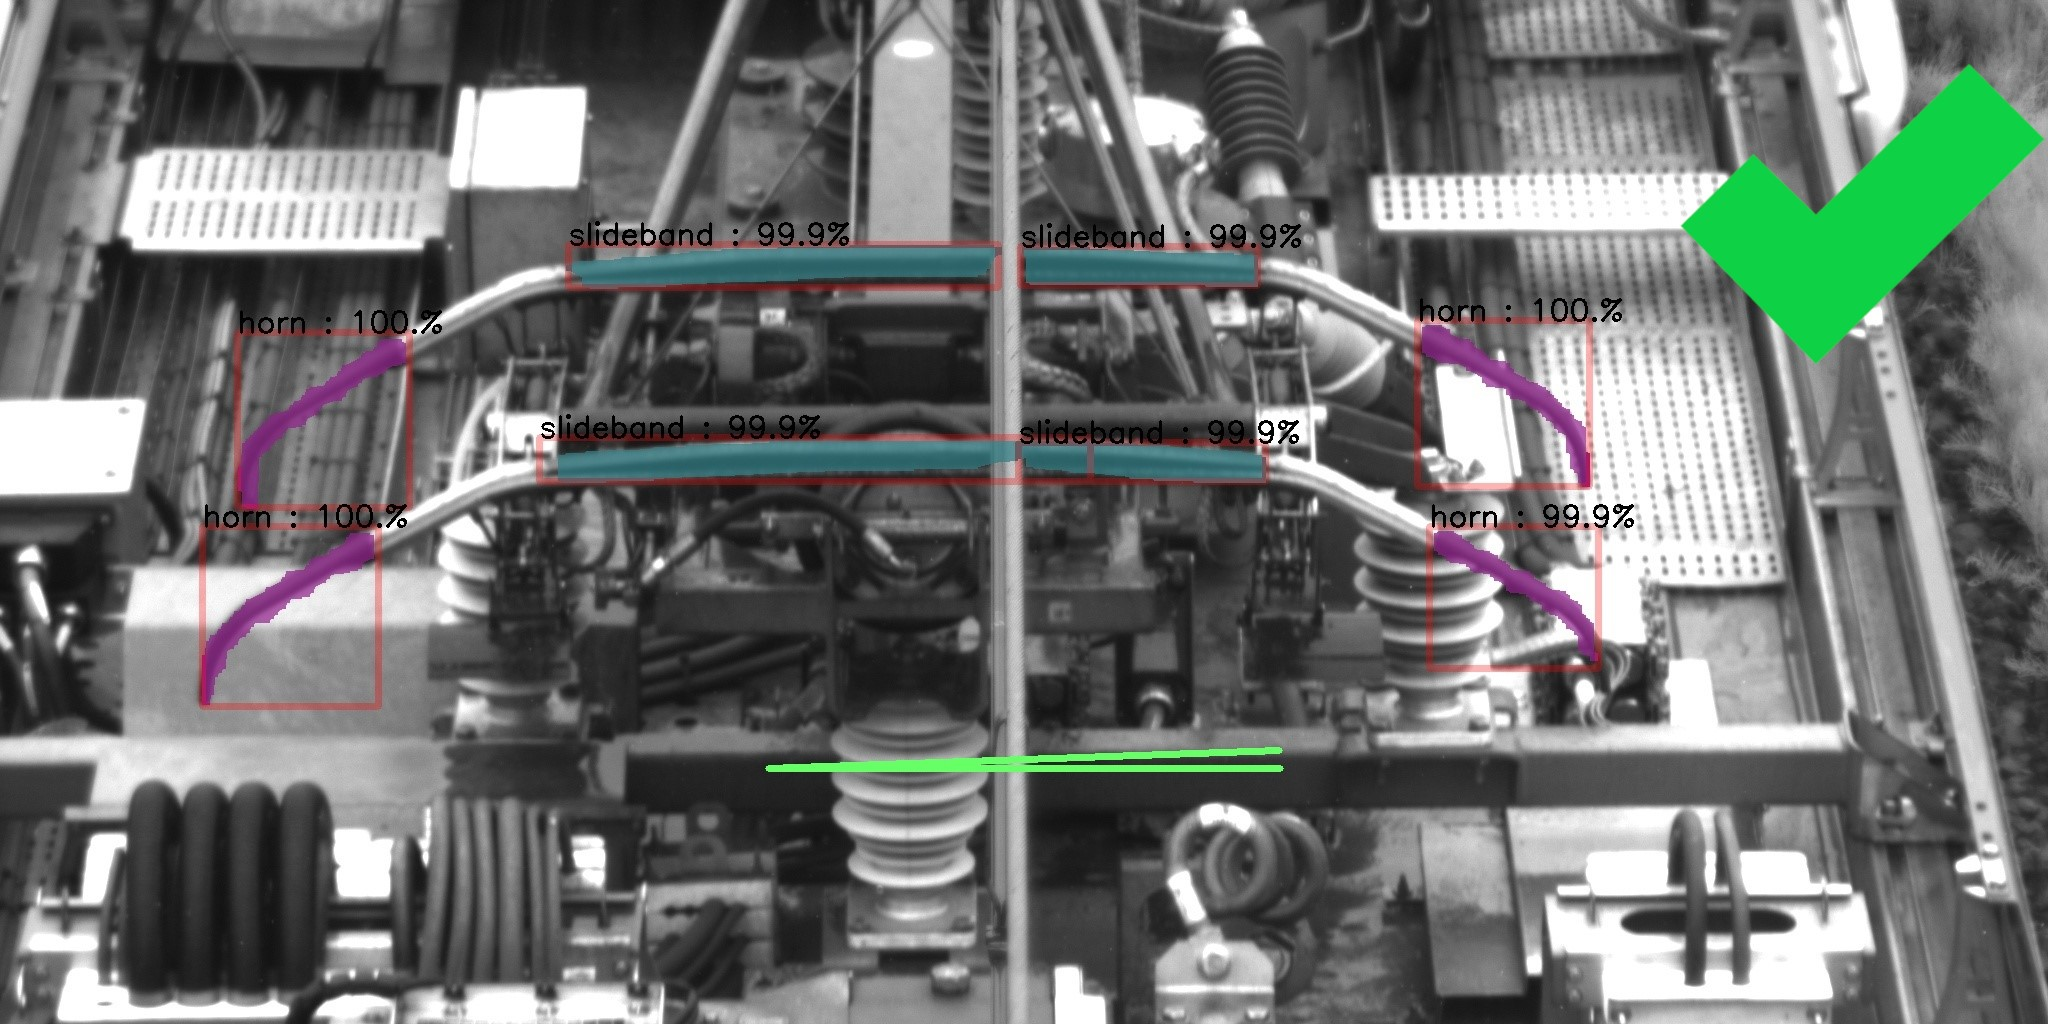 The embedded artificial intelligence monitors the detected pantographs for compliance, if the pantograph is tilted or damaged, the ECS sends the non-compliance alert to the operator in less than 5 min, via the 4G network. It is also possible to add the feature of pantograph counting (raised/lowered). A tilt problem is indicated by red stripes instead of green ones.